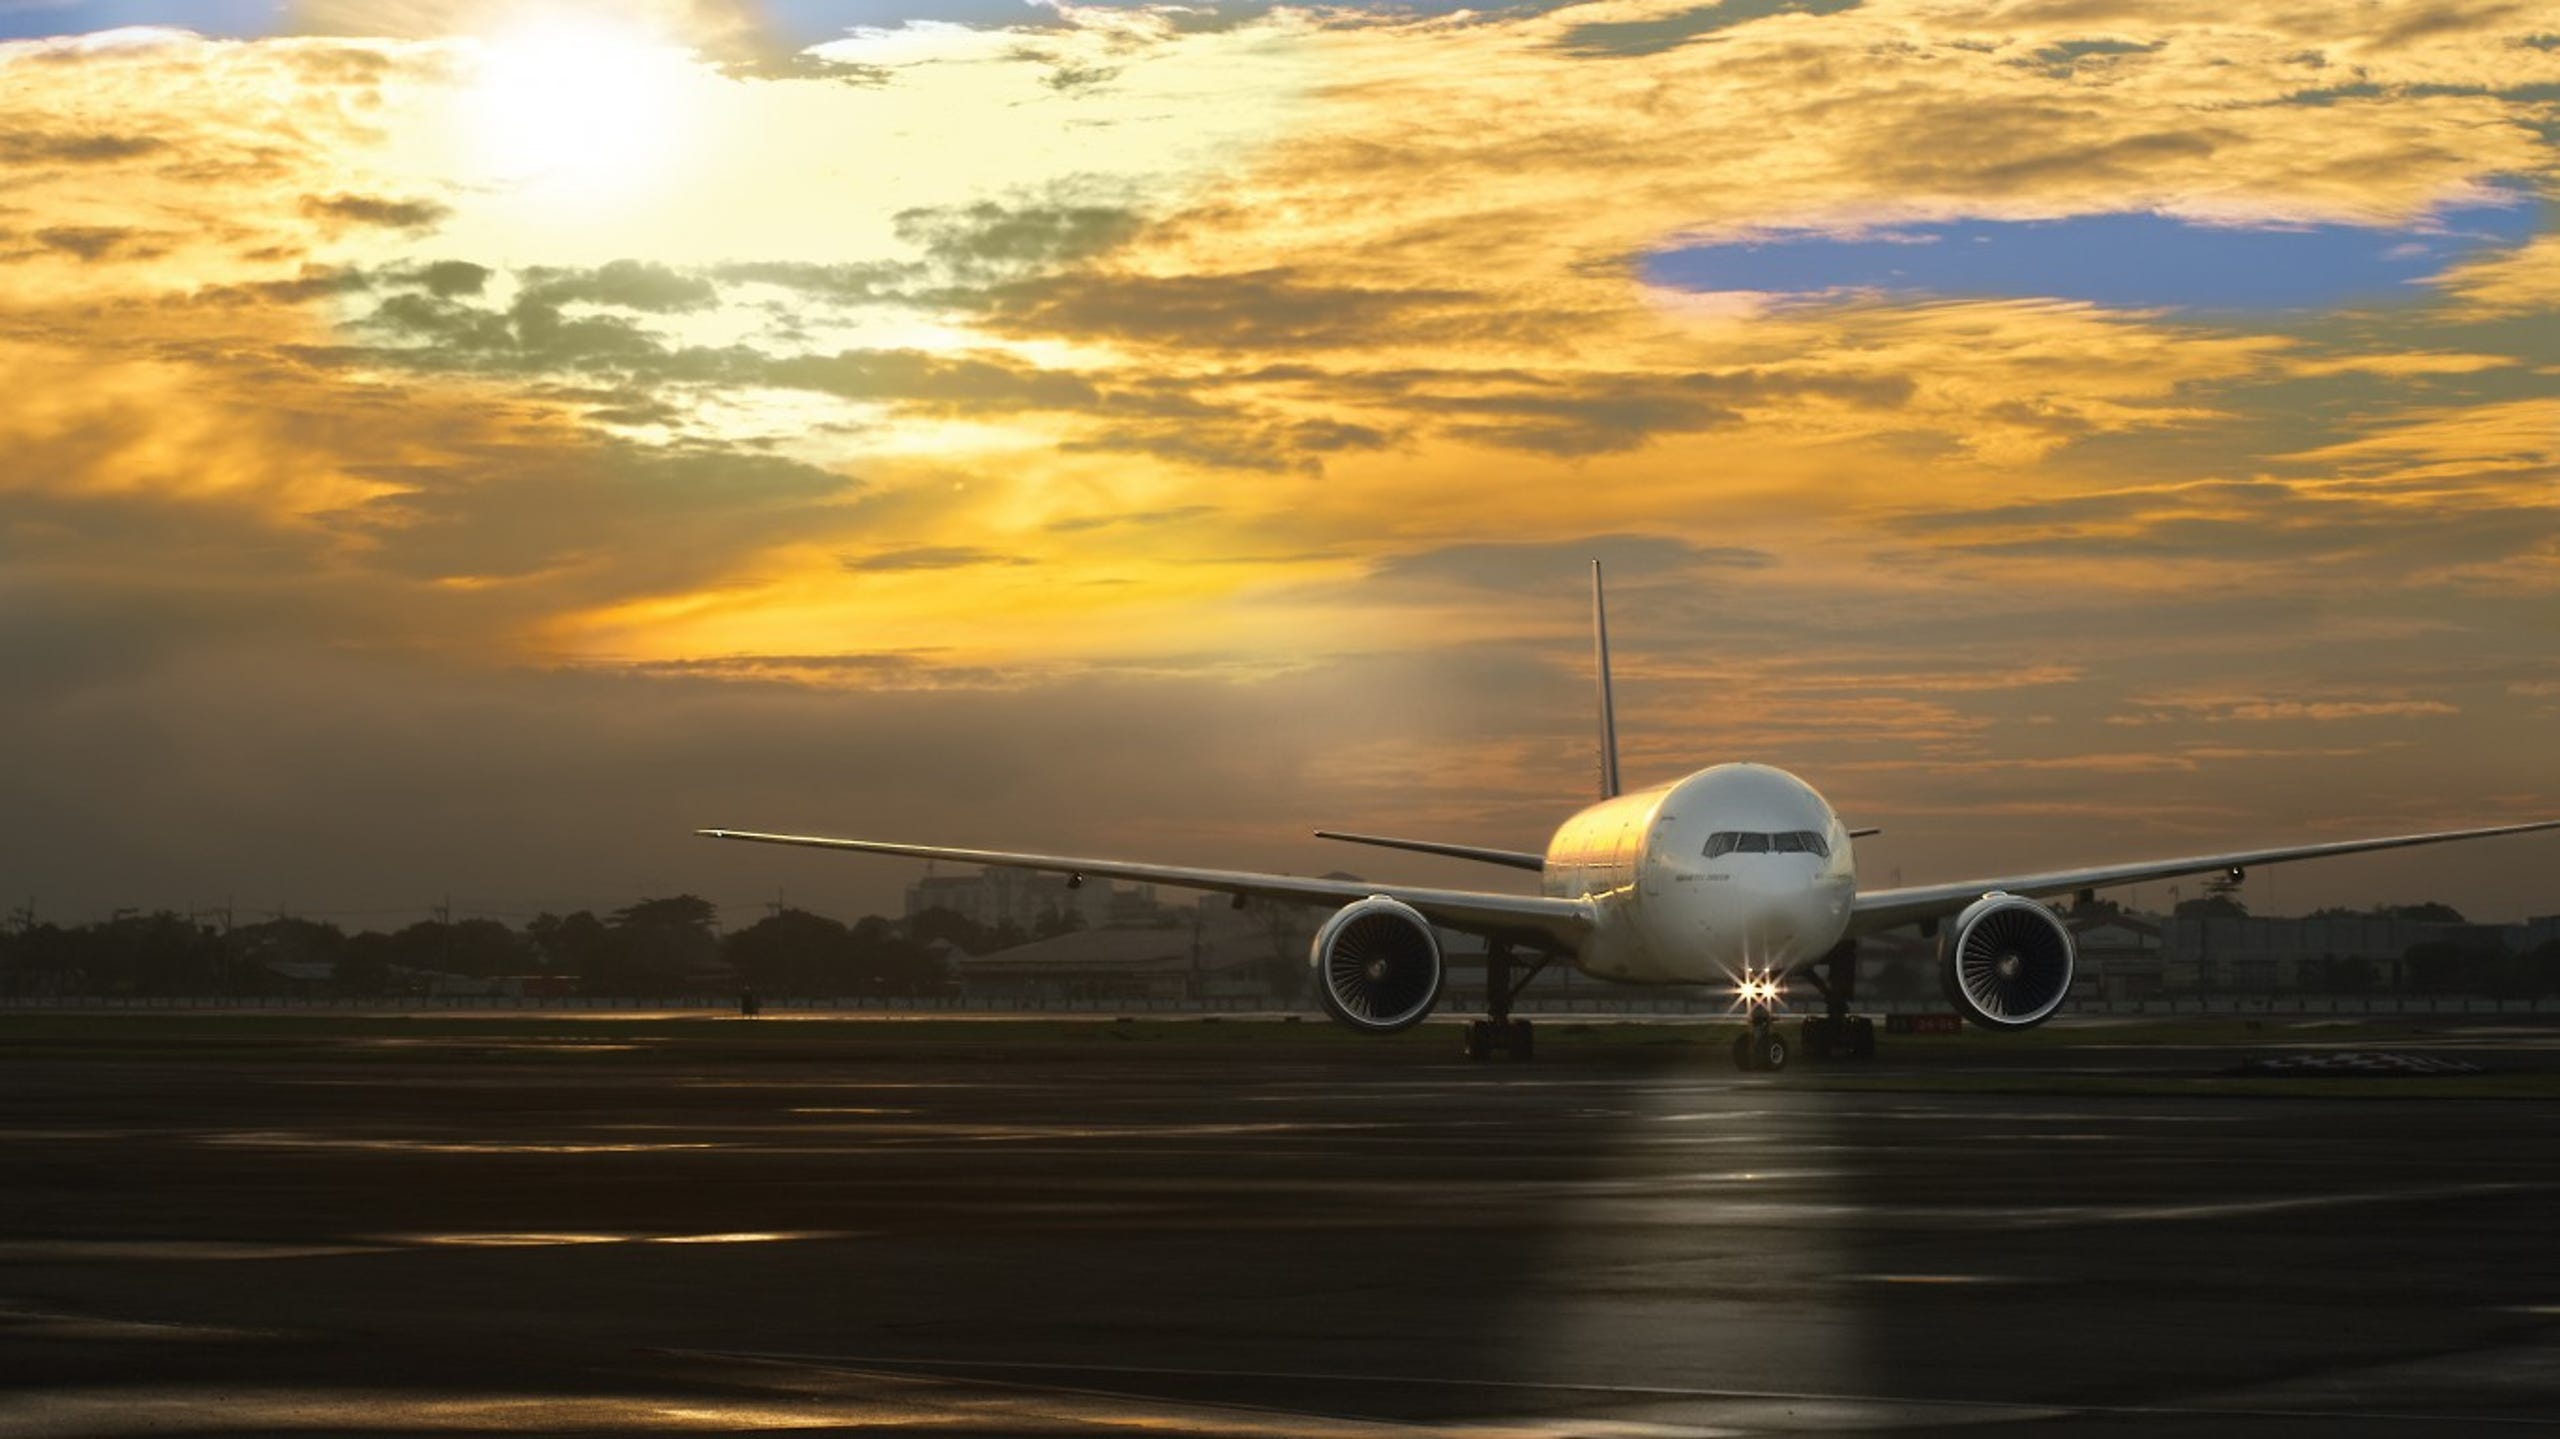 These are the longest direct flights in the world